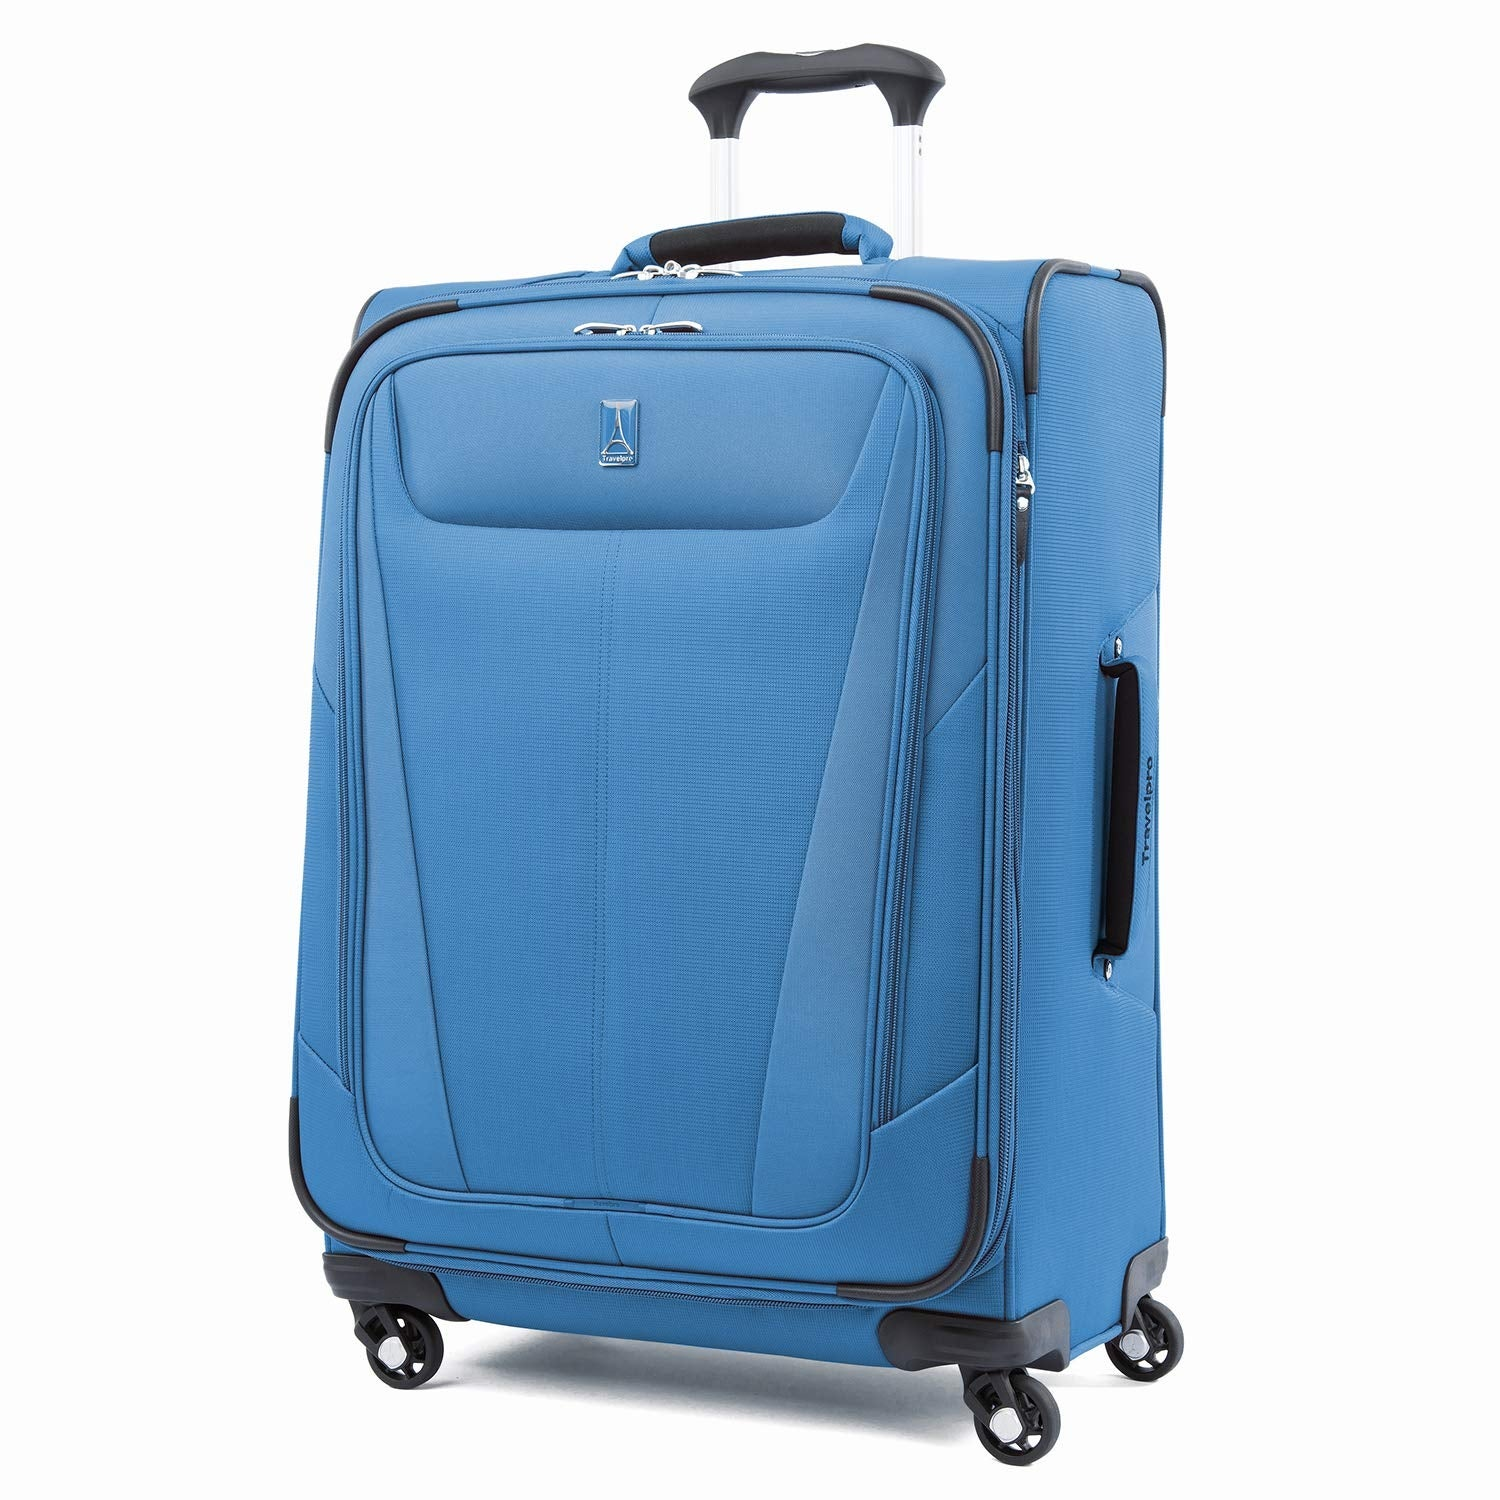 a4c041271 Travelpro Maxlite 5 - 25 Azure Blue Polyester Fabric Expandable Spinner w/  Honeycomb Frame System